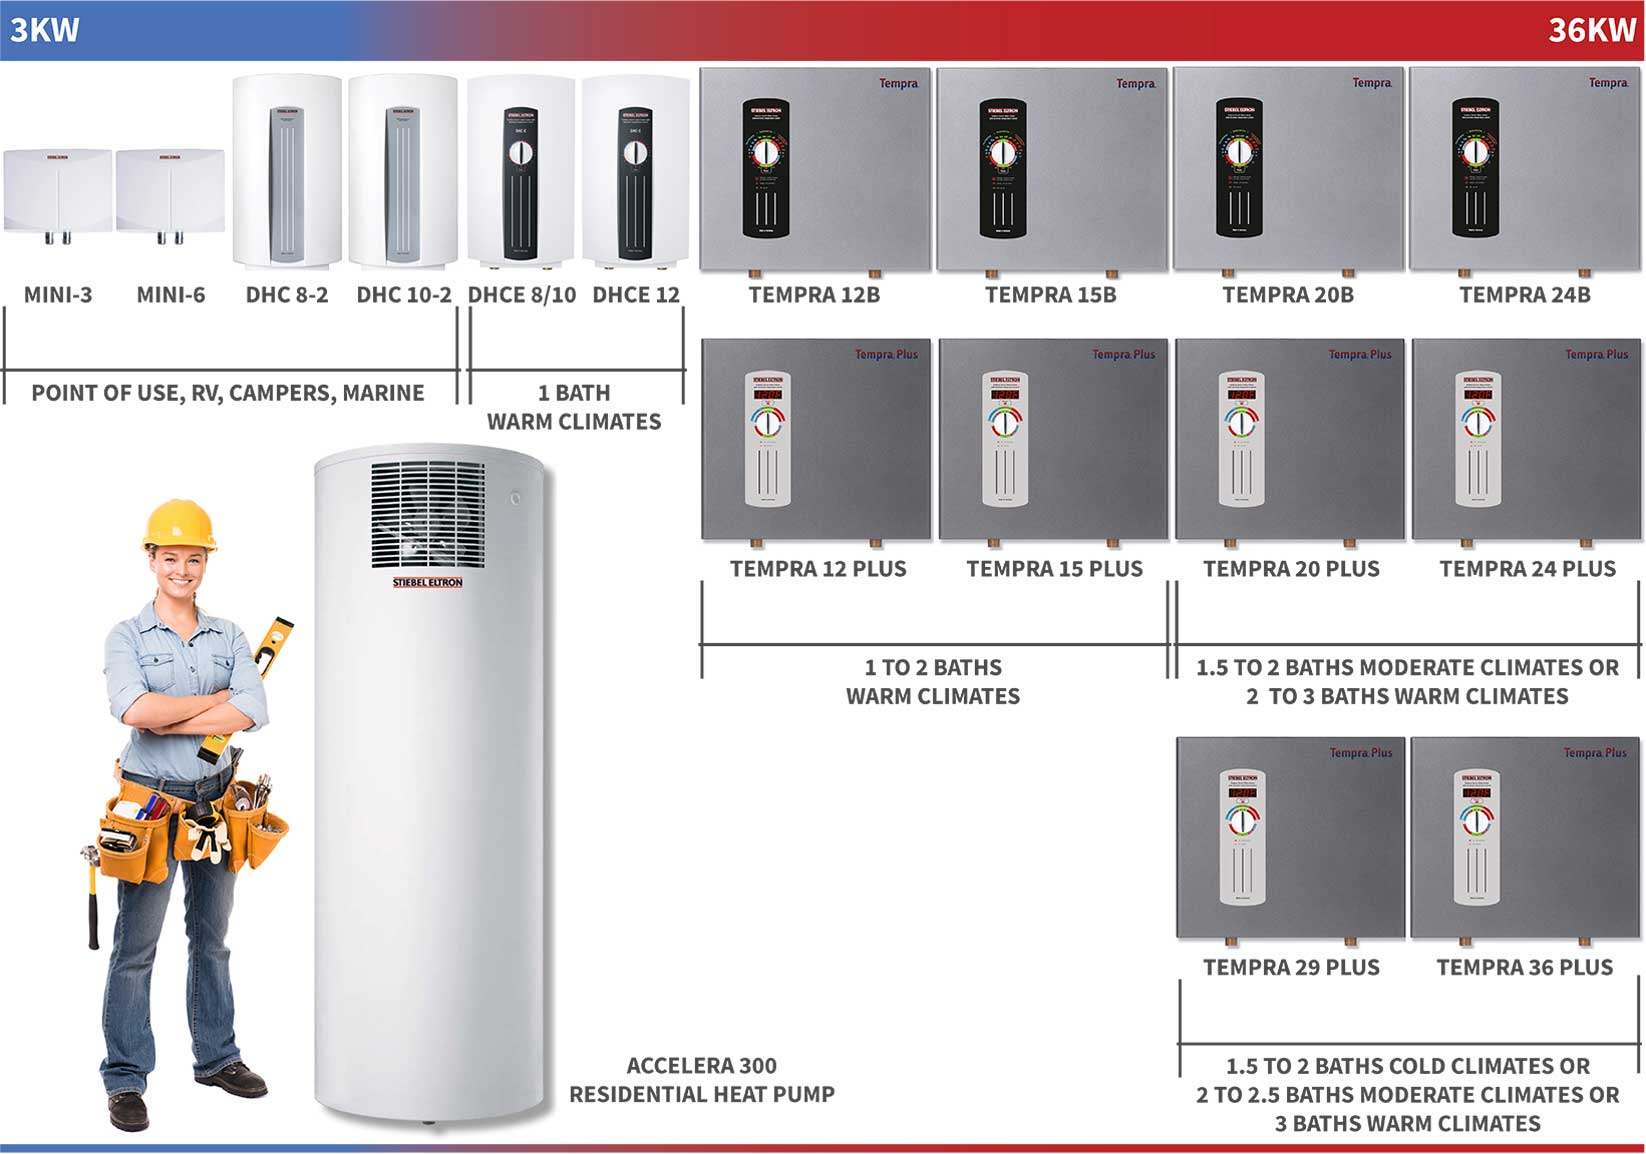 Siebel Eltron tankless water heater size guide displaying heaters from smallest to biggest.